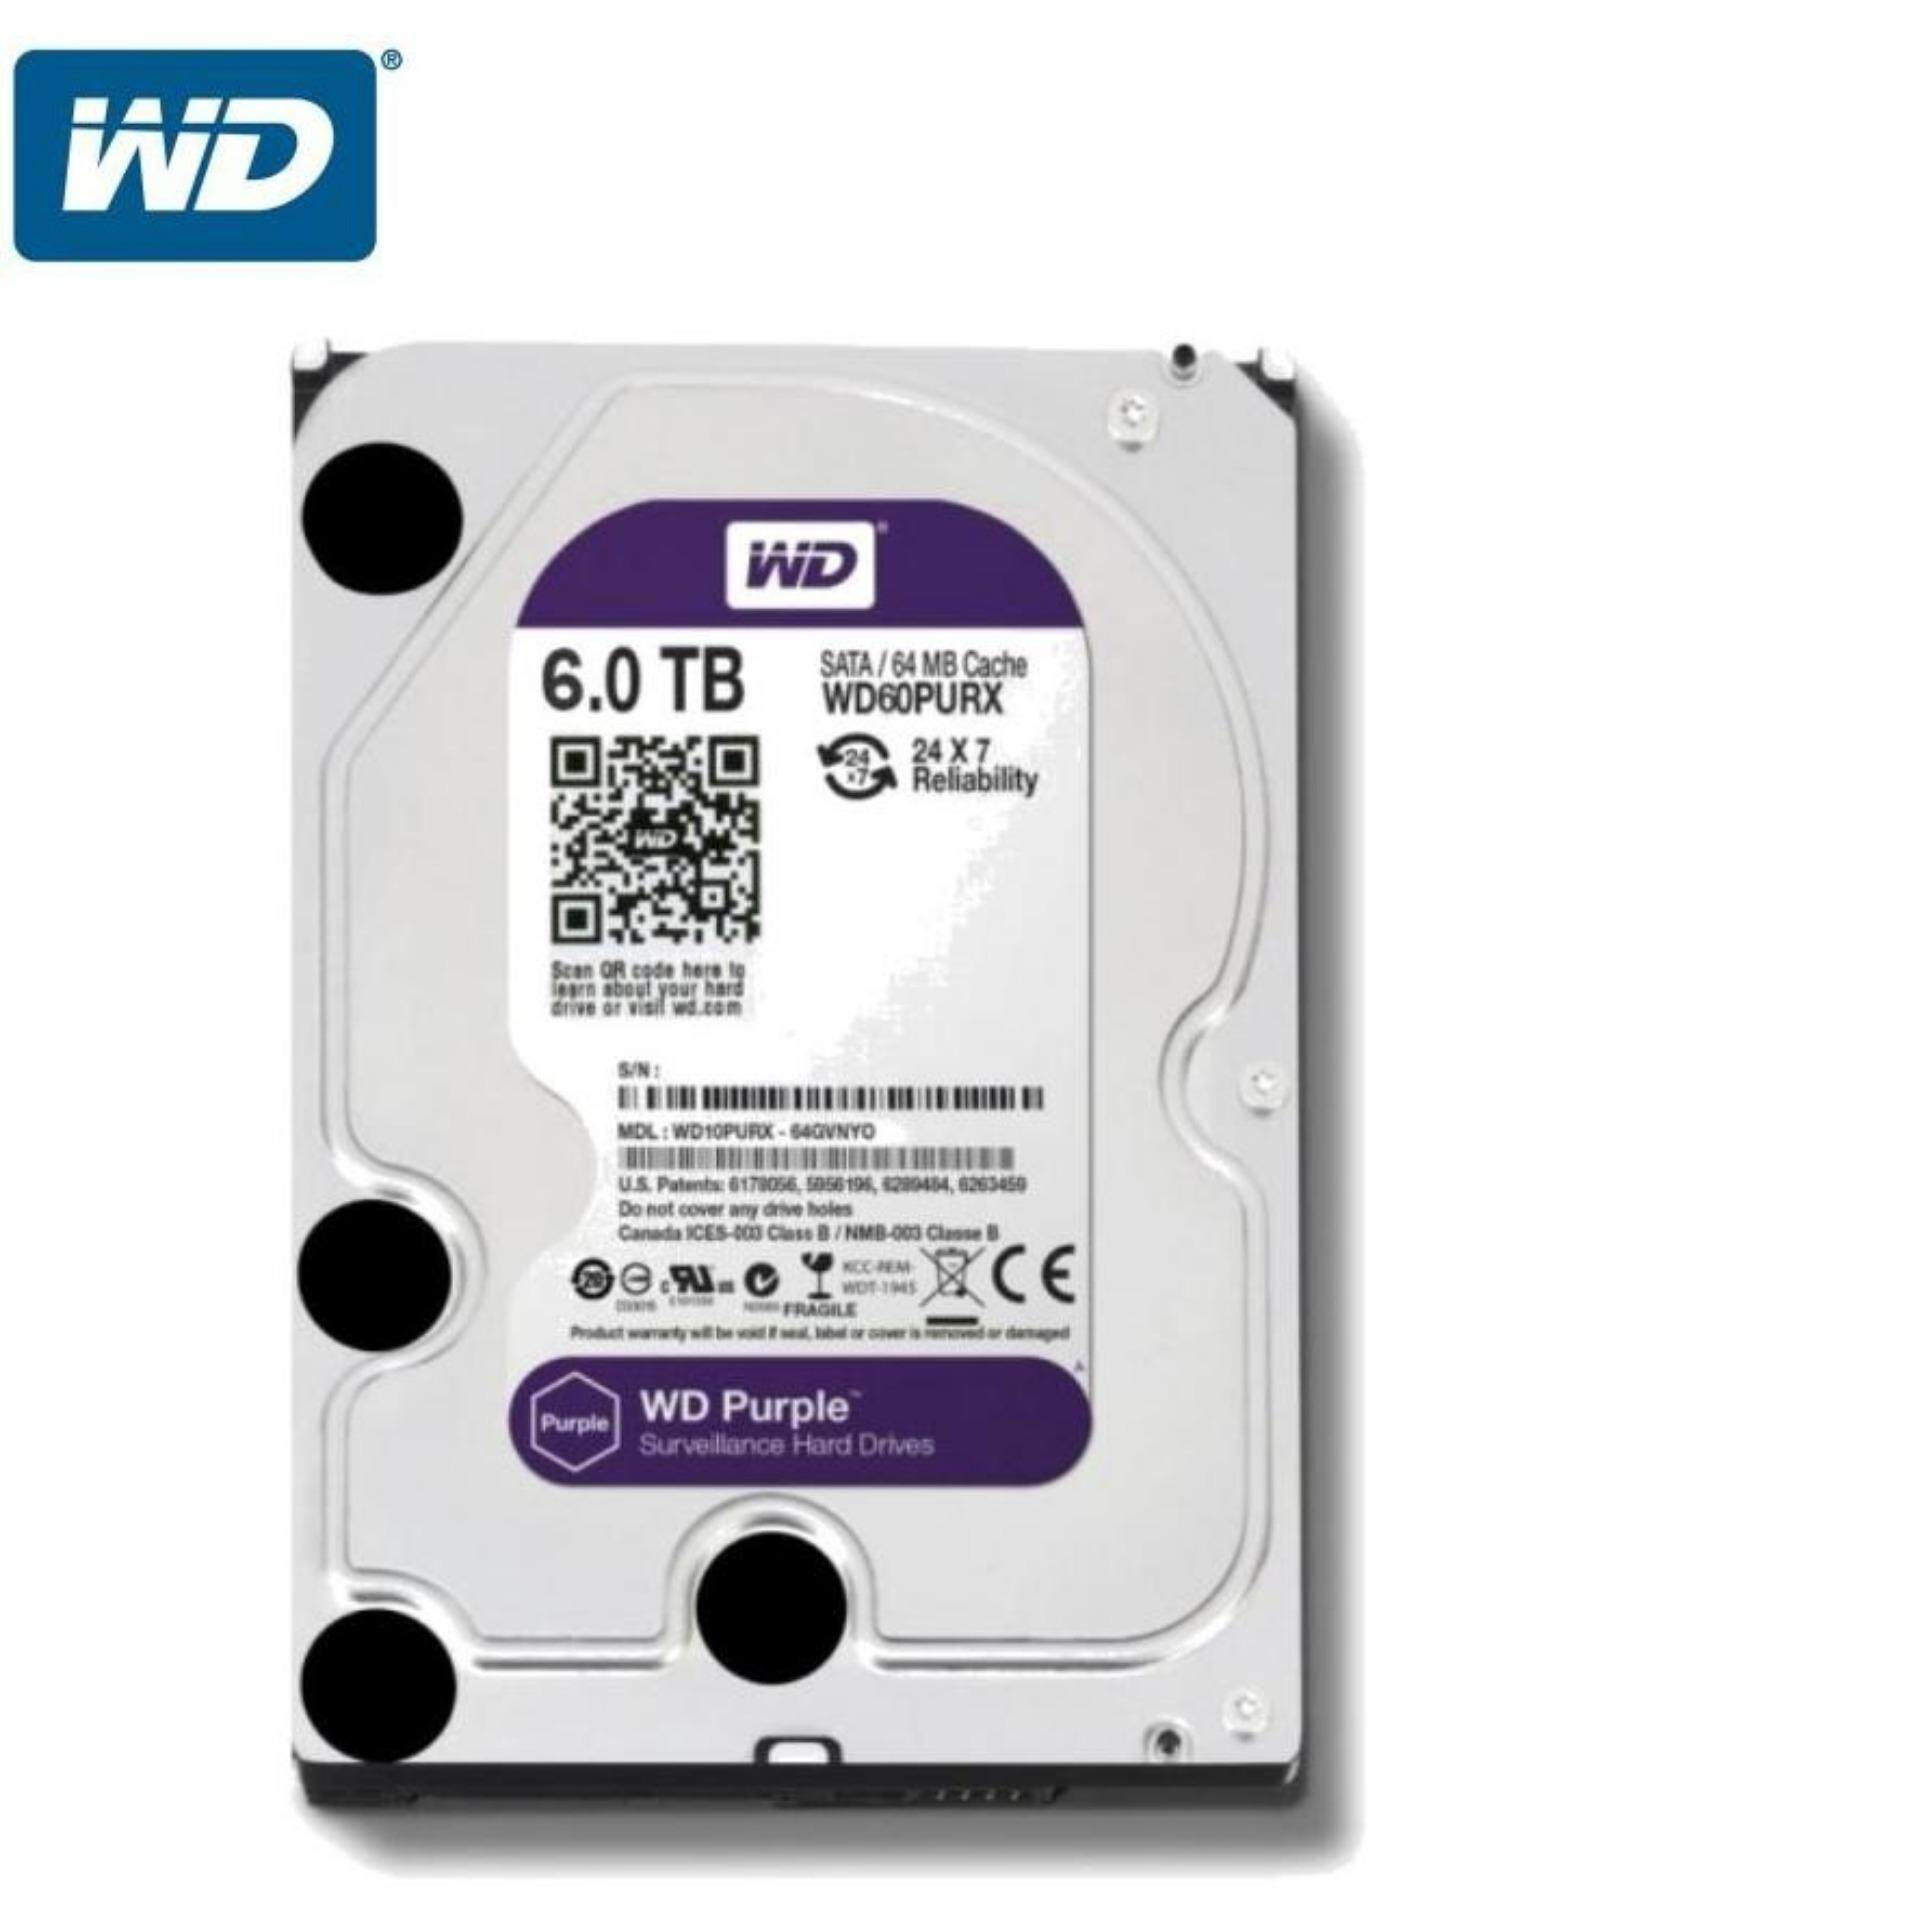 Internal Hard Drives With Best Online Price Malaysia Hardisk Pc 250 Gb Seagate Sata Wd Purple 6tb Surveillance Disk Drive 5400 Rpm Class 6 S